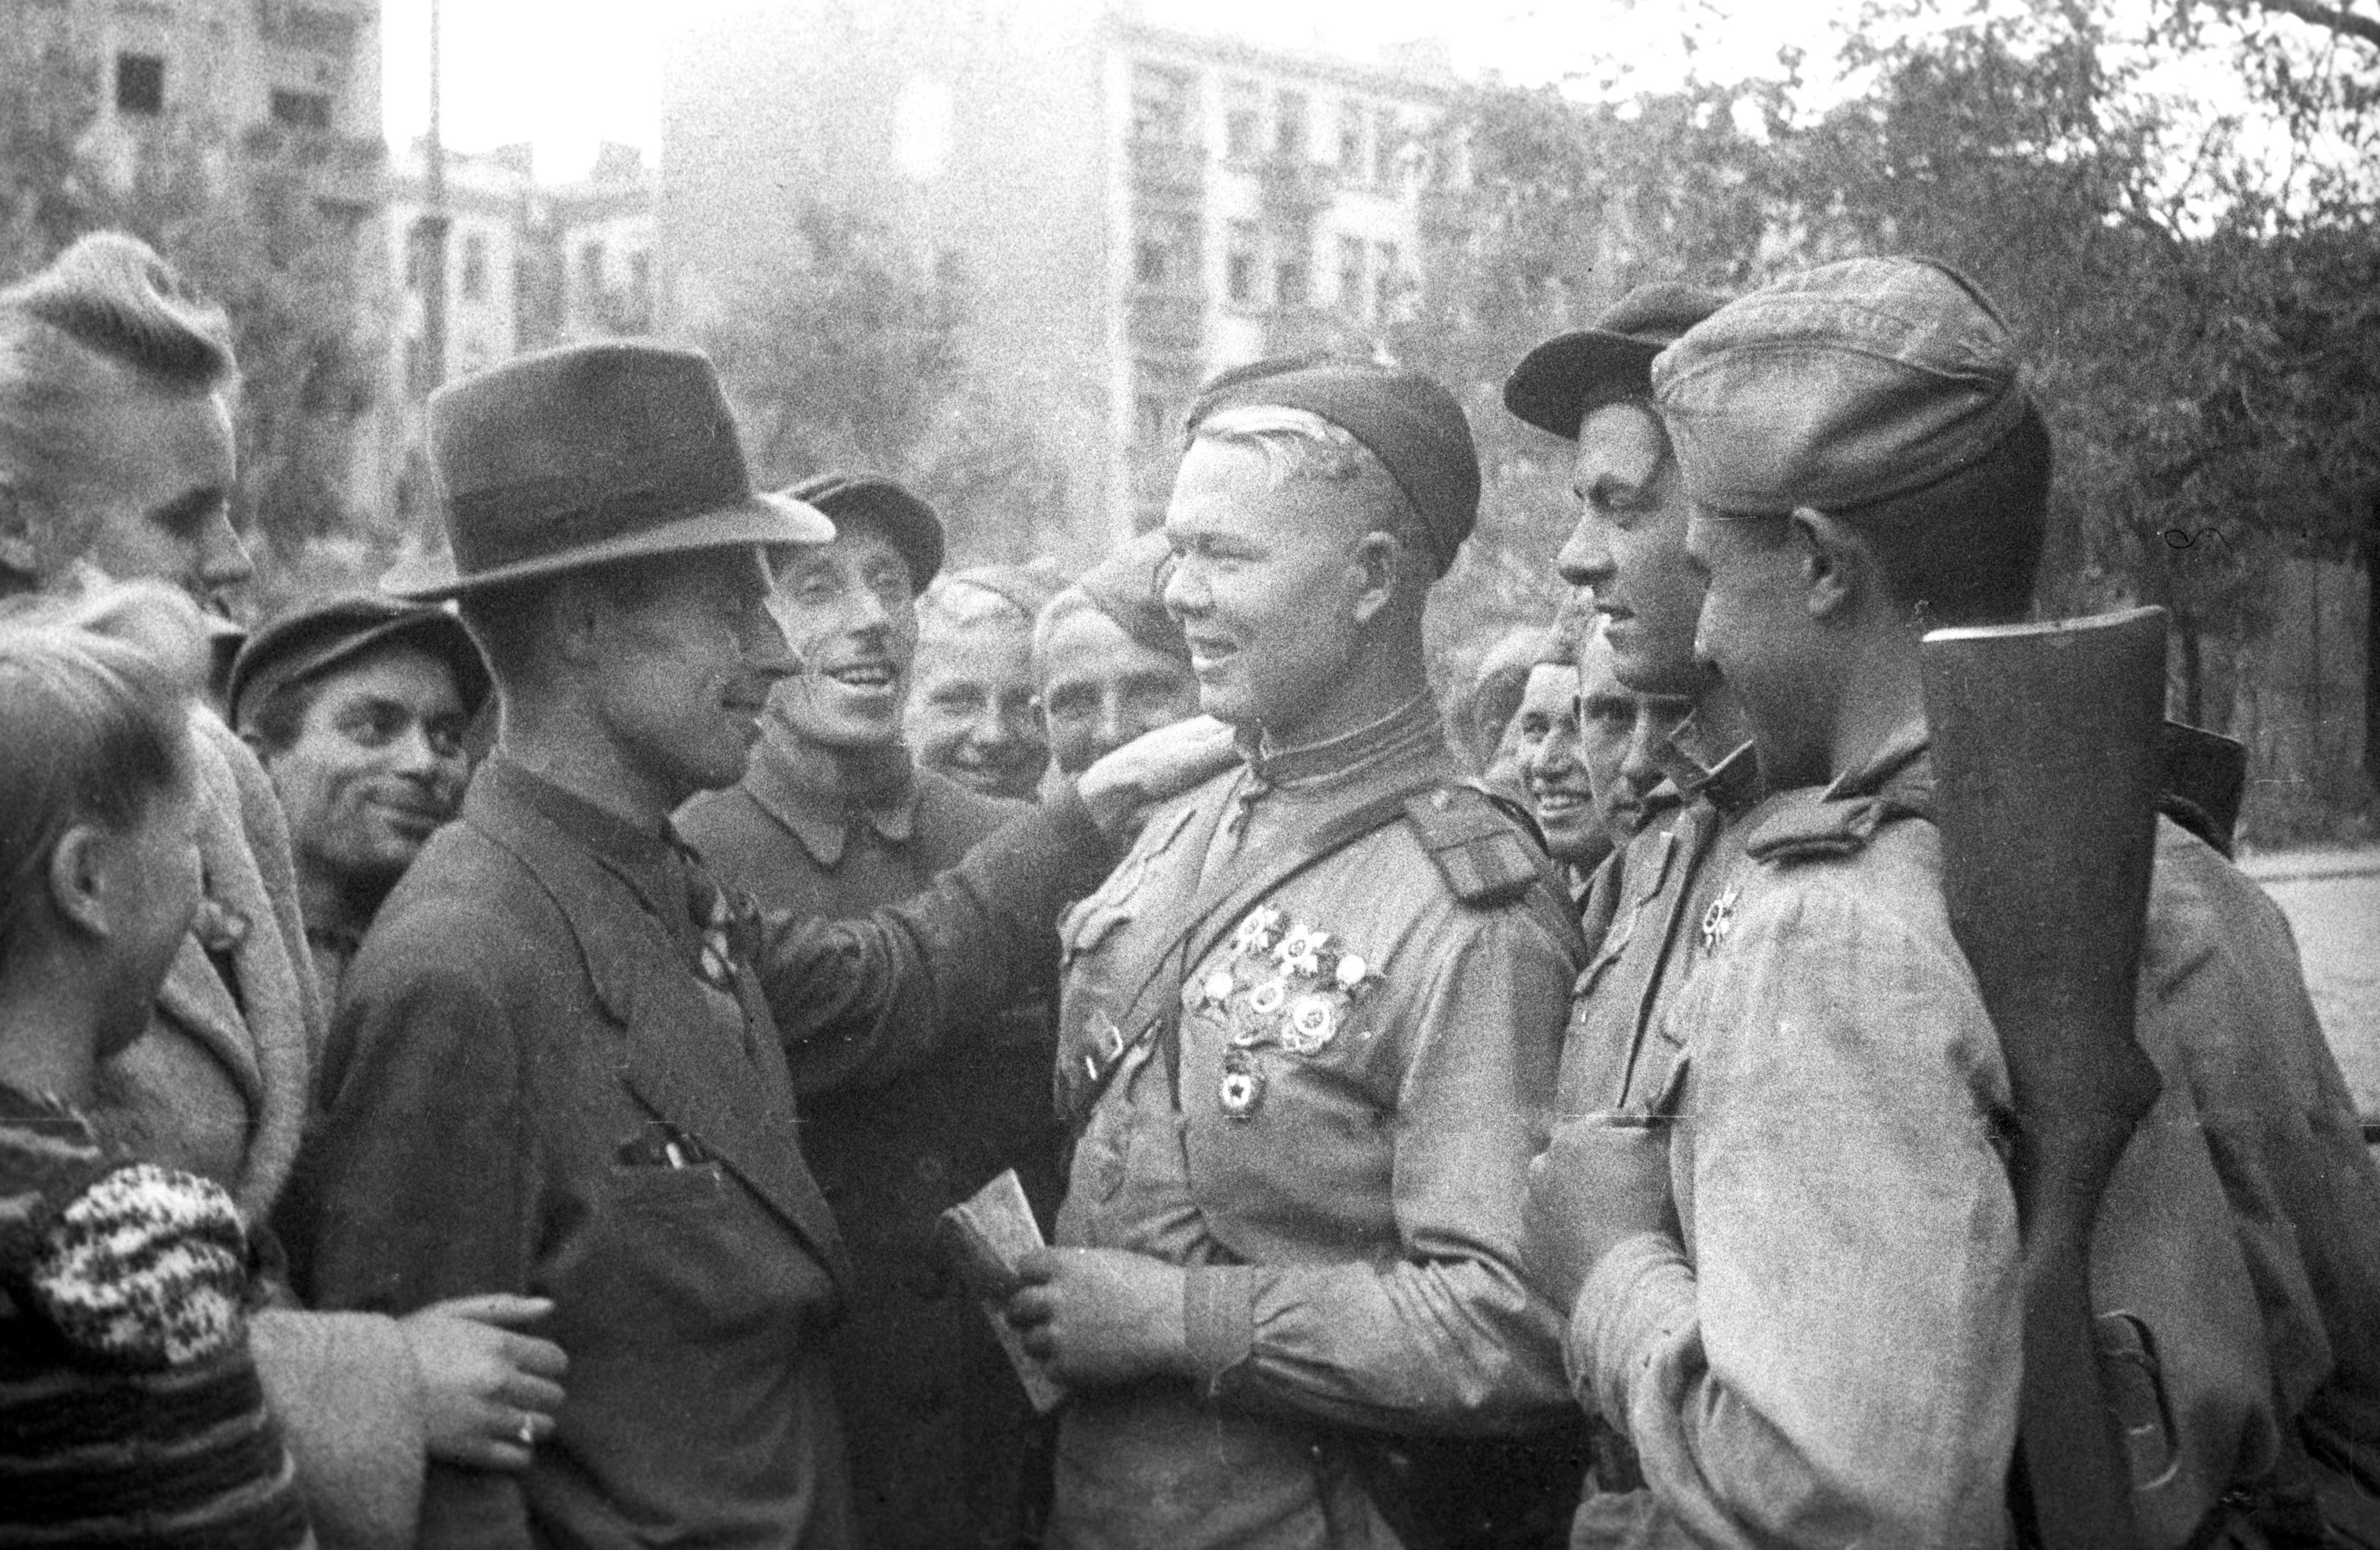 Local residents and Soviet fighters, Lublin. Poland. July 1944. The Great Patriotic War of 1941-1945